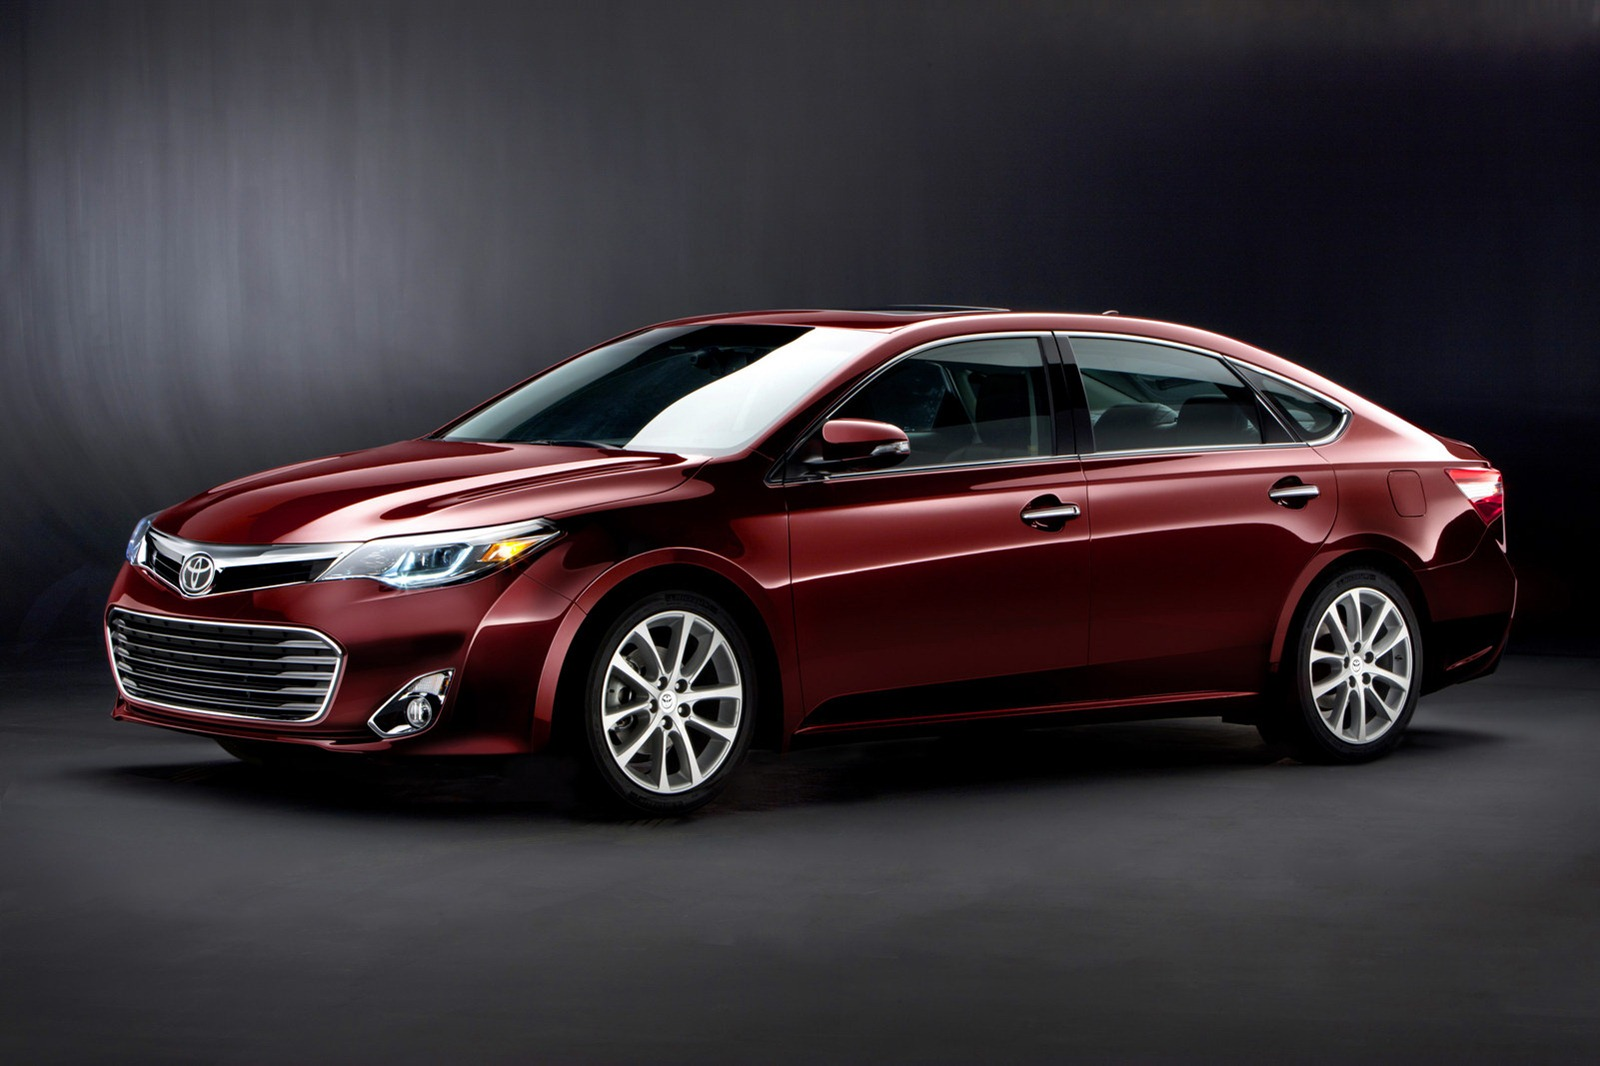 2013 Toyota Avalon Sedan Specs of 2013 Toyota Avalon Sedan revealed